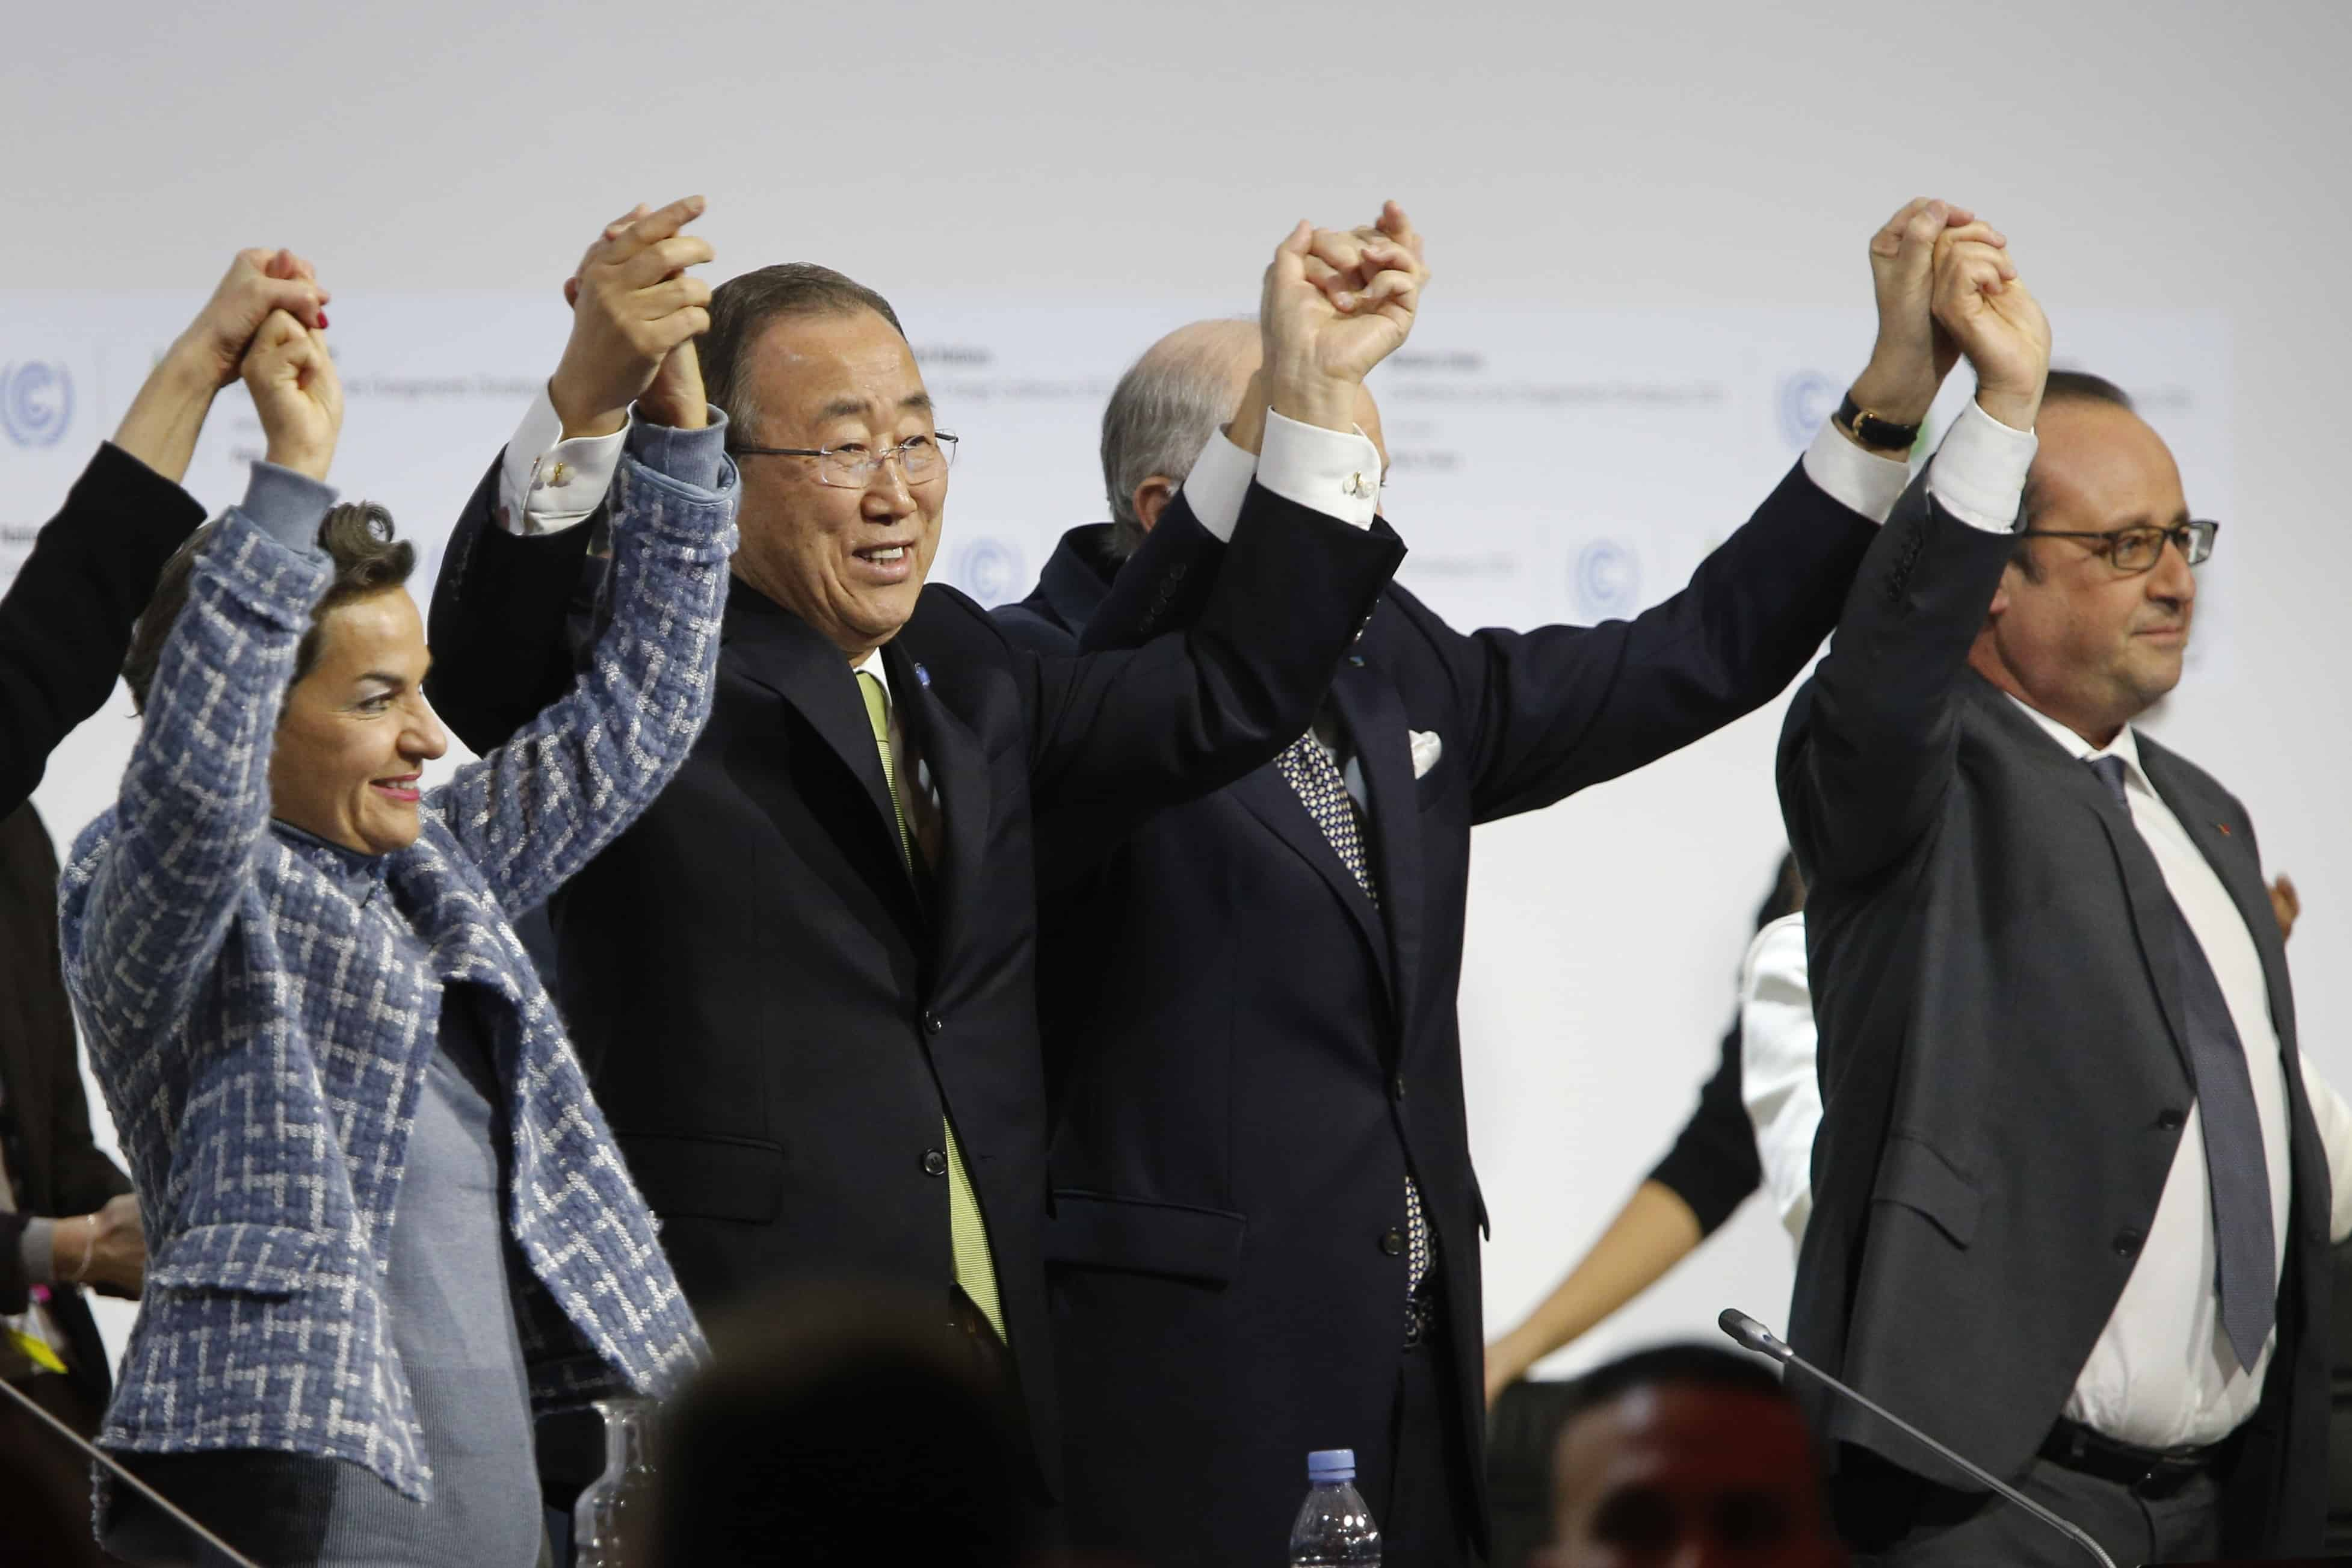 Paric climate talks: Christiana Figueres, Ban Ki Moon, Laurent Fabius and Francois Hollande